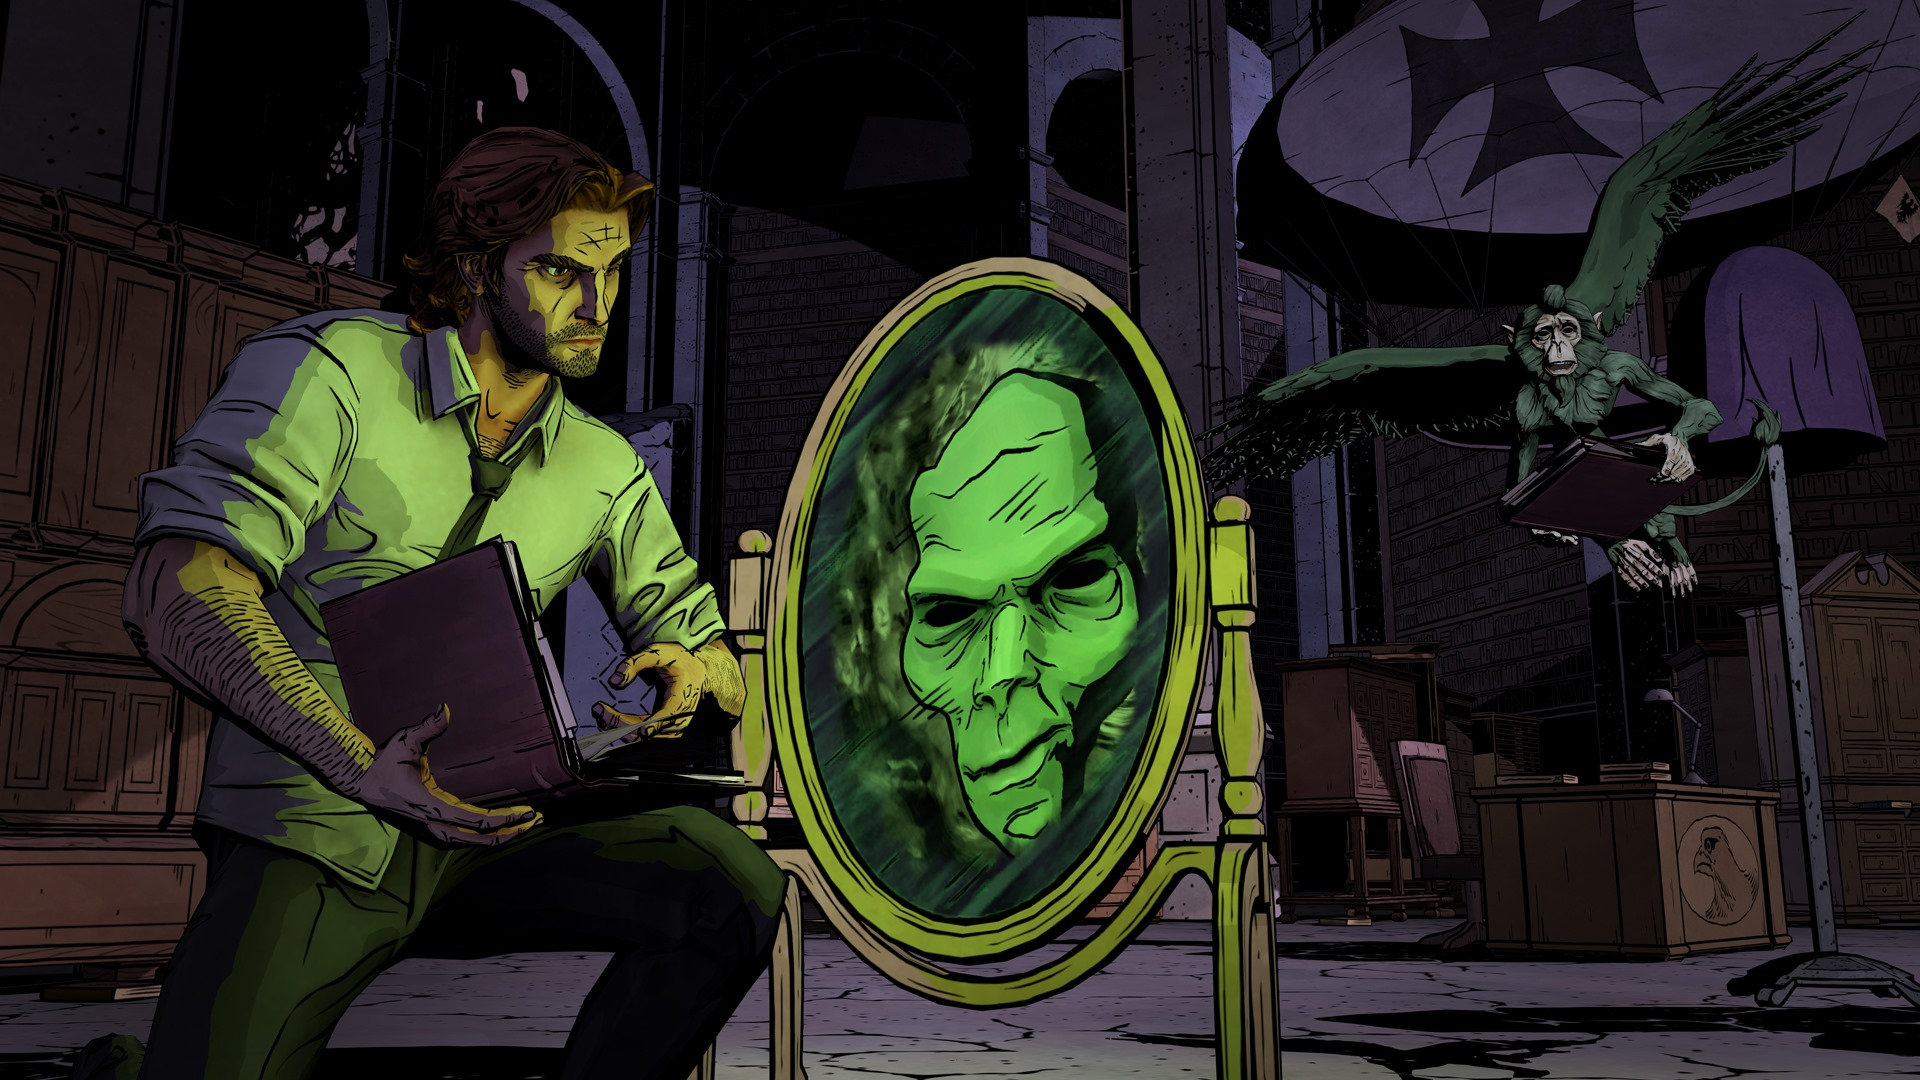 27 Best (And 5 WTF) New Android Games From The Last 2 Weeks (6/24/14 - 7/7/14)